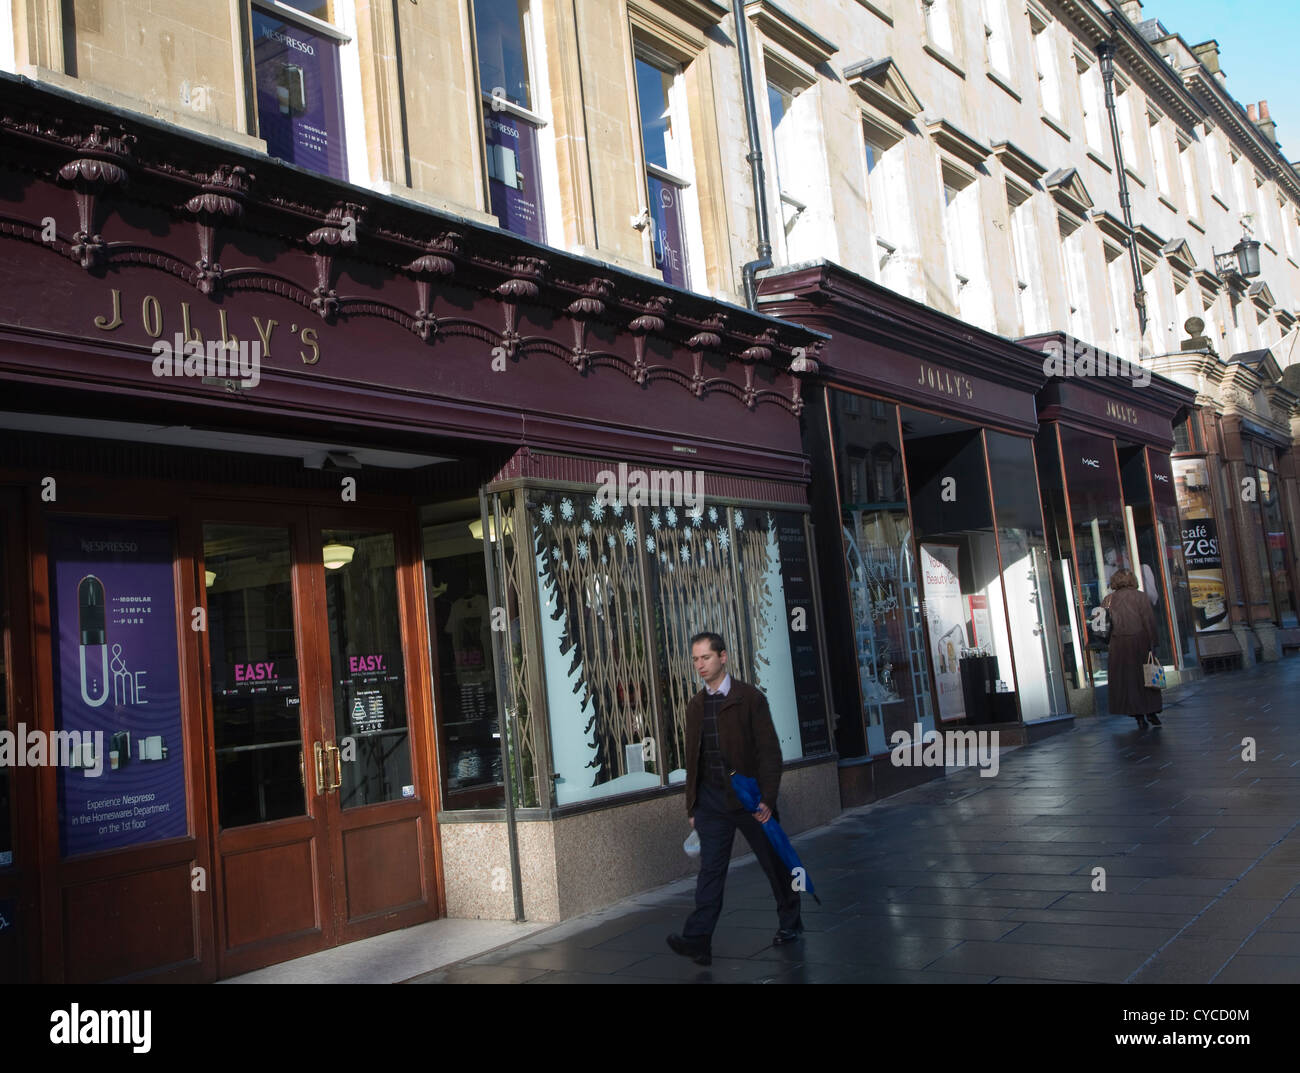 Milsom Stock Photos & Milsom Stock Images - Alamy